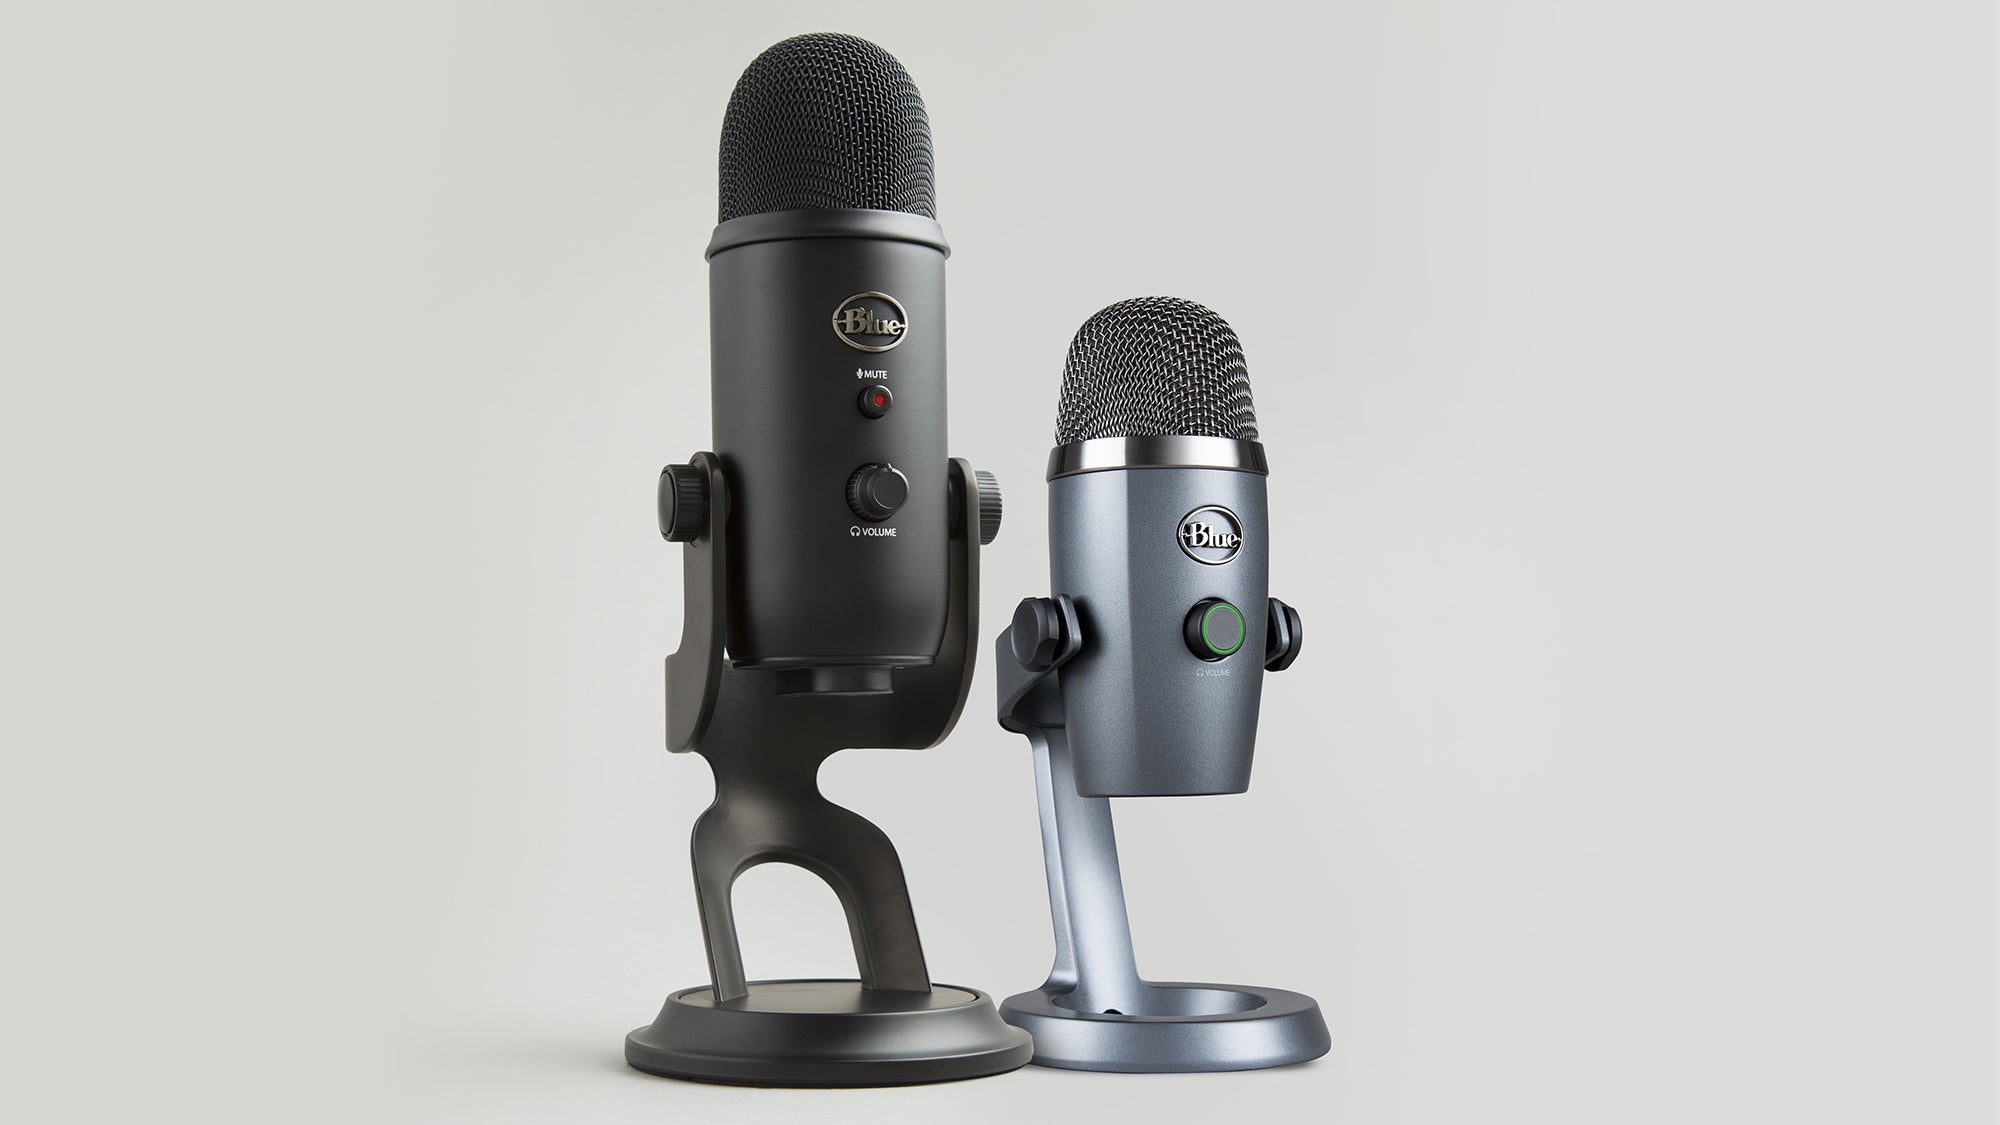 Blue's Yeti Nano Is A Shrunken Down Version Of The Popular Podcasting And YouTuber Mic